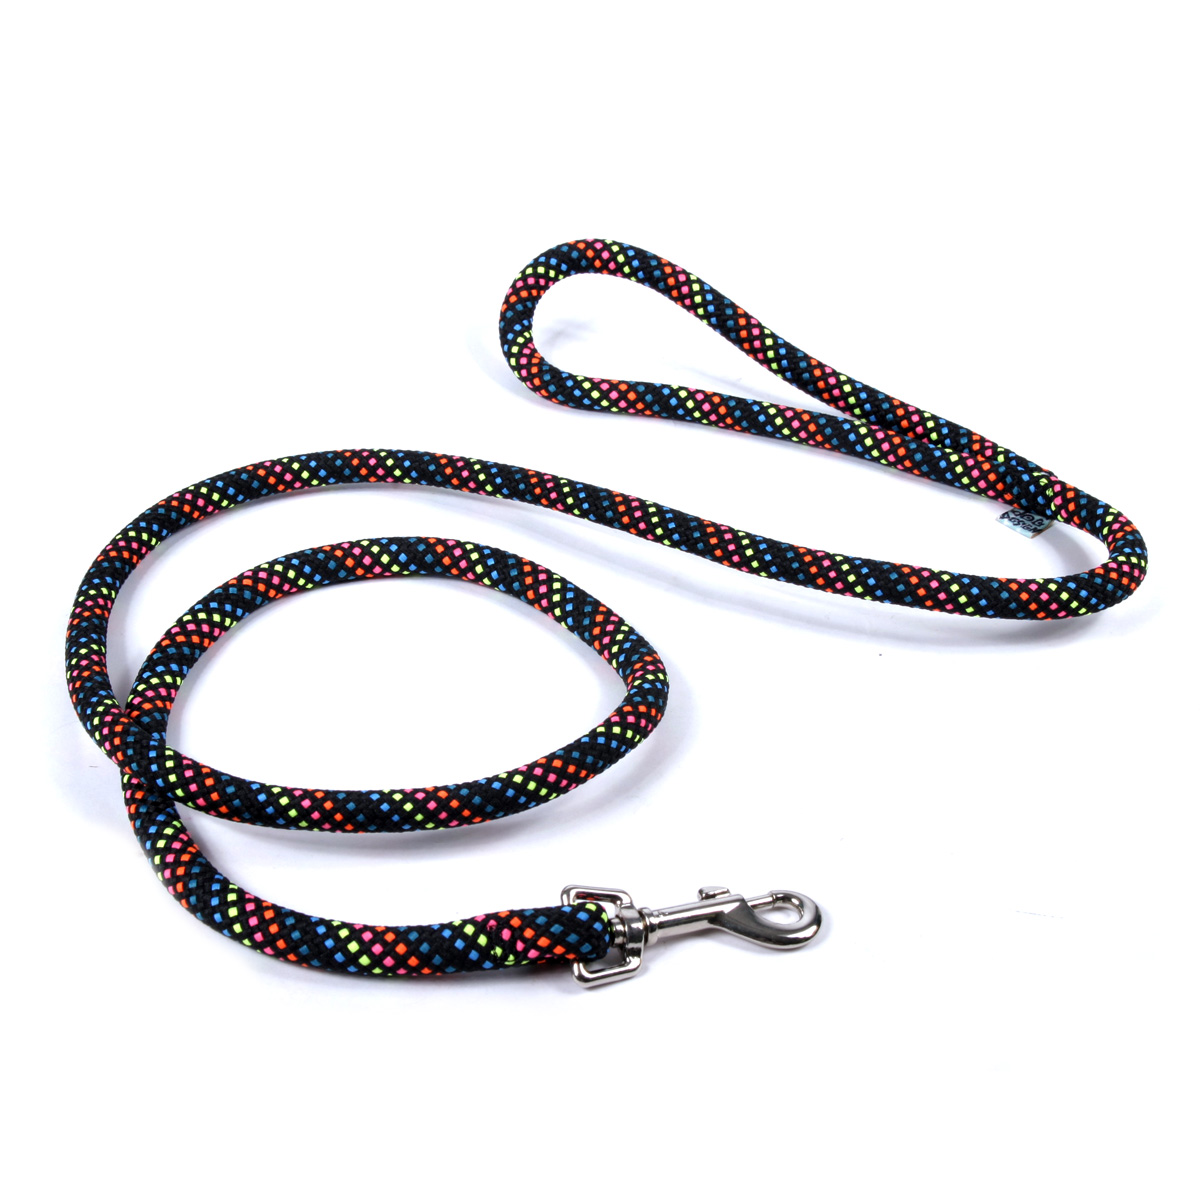 Round Braided Multicolor/Black Rope Lead